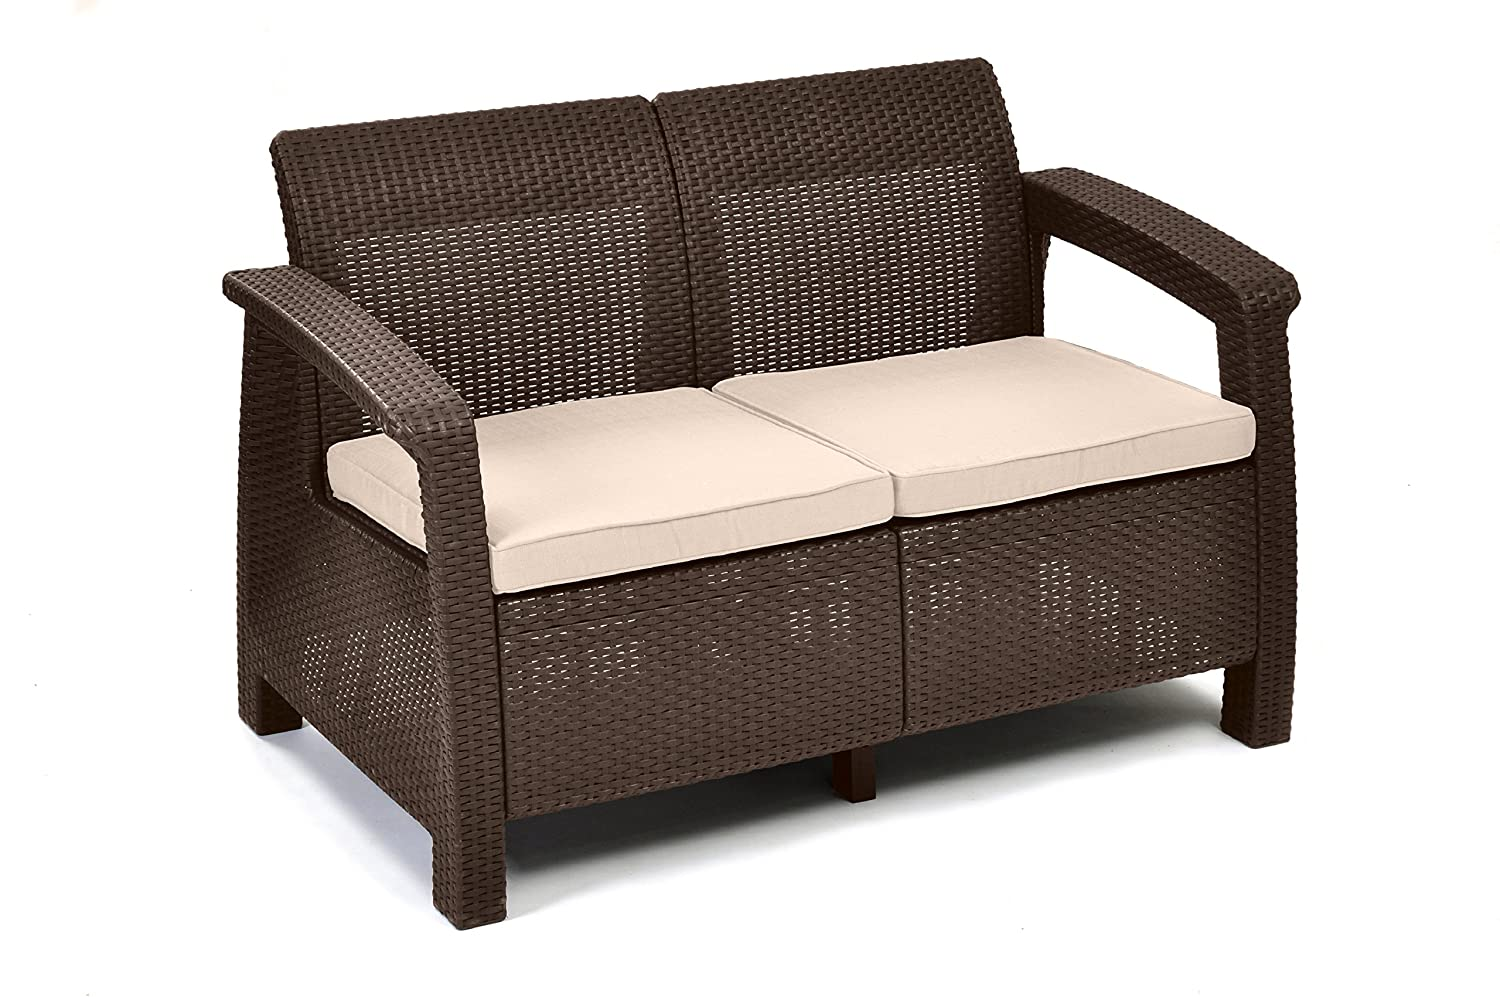 patio couch set amazoncom keter corfu love seat all weather outdoor patio garden furniture w cushions brown patio loveseats patio lawn amp garden